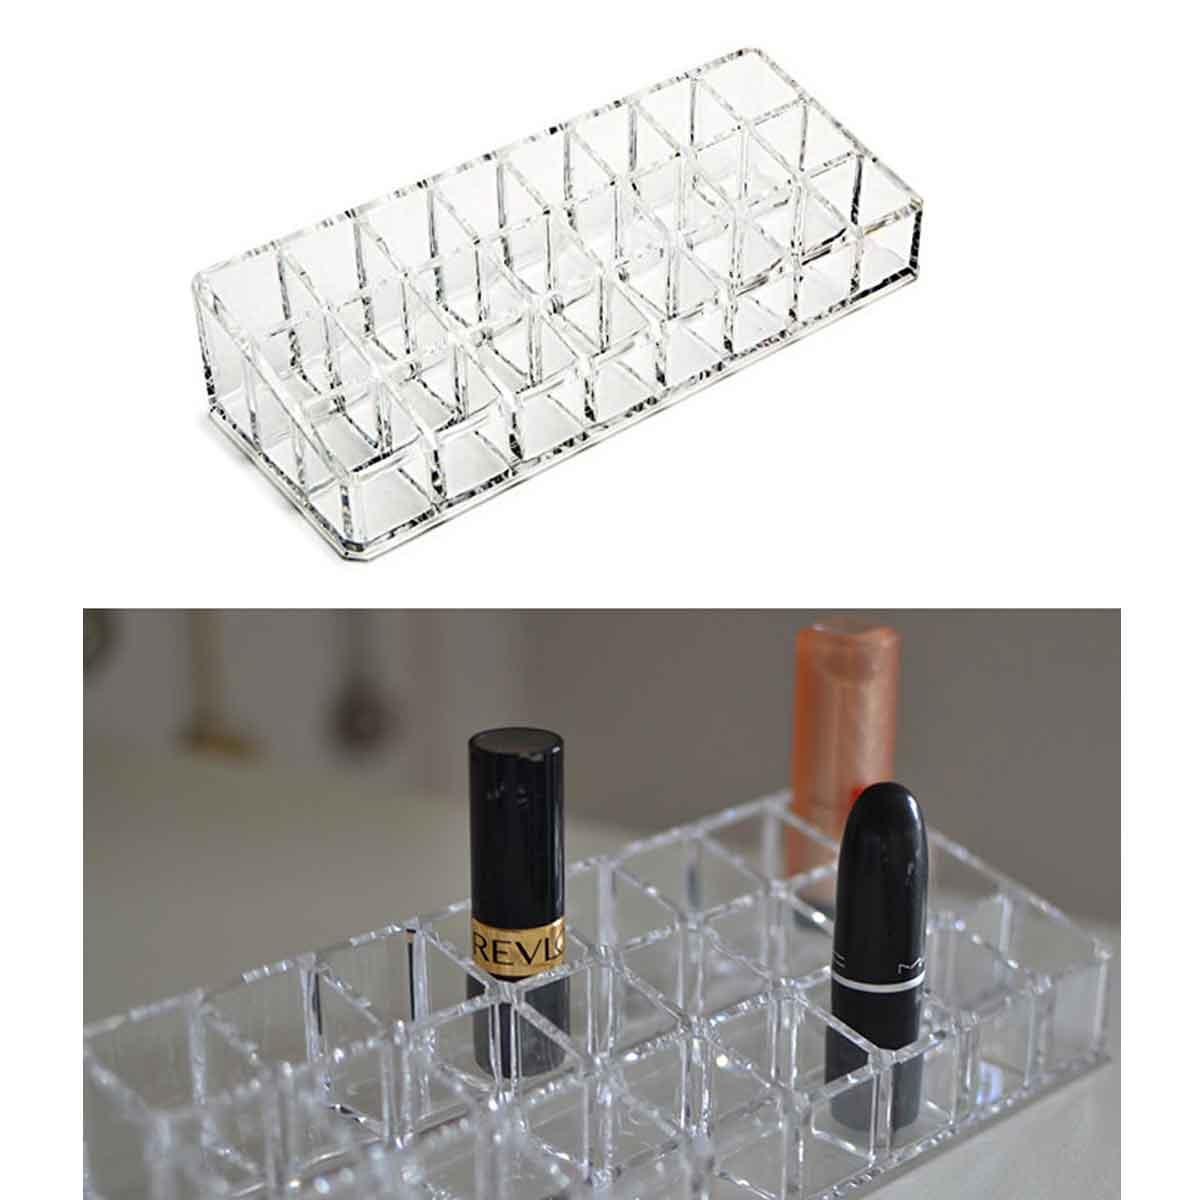 Kafwondermaticsechangekenwoodvssik Collection Buy Kaf Servis Washing Machine Wiring Diagram Lipsticks Organizer Holder Cosmetics Acrylic 24 Holes